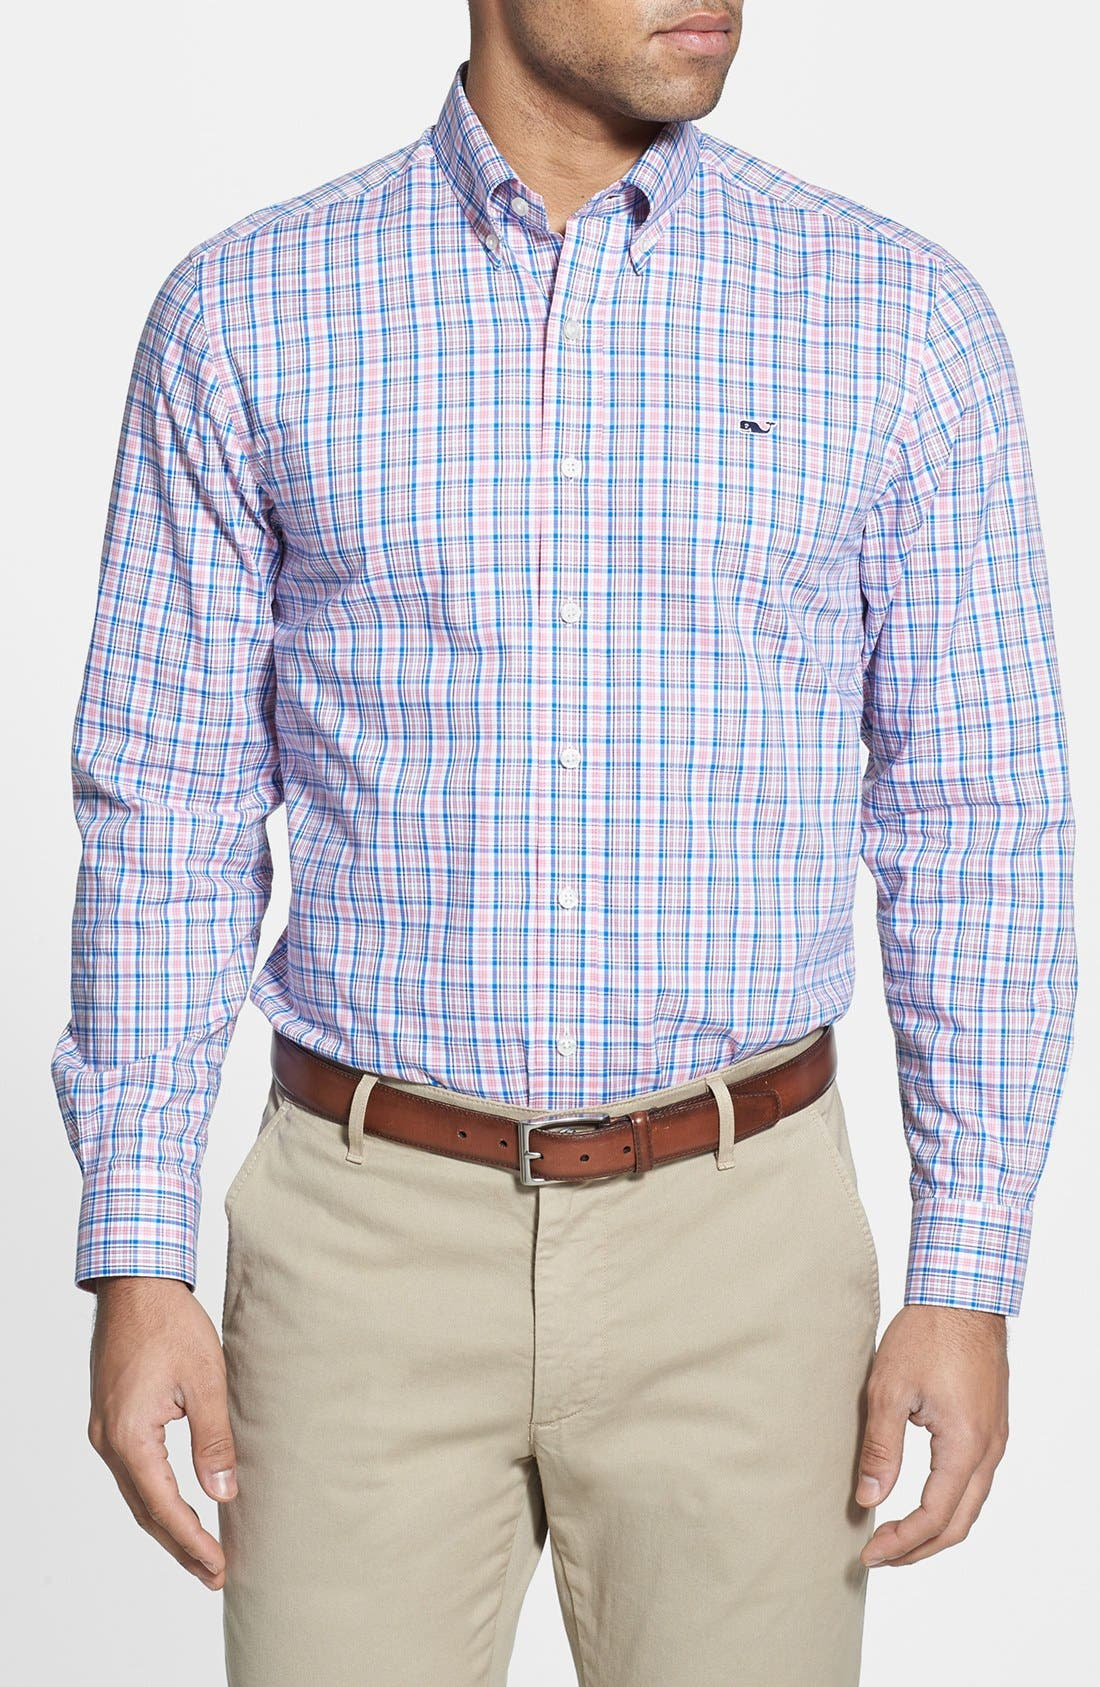 Main Image - Vineyard Vines 'Whale - Bayberry' Check Slim Fit Sport Shirt